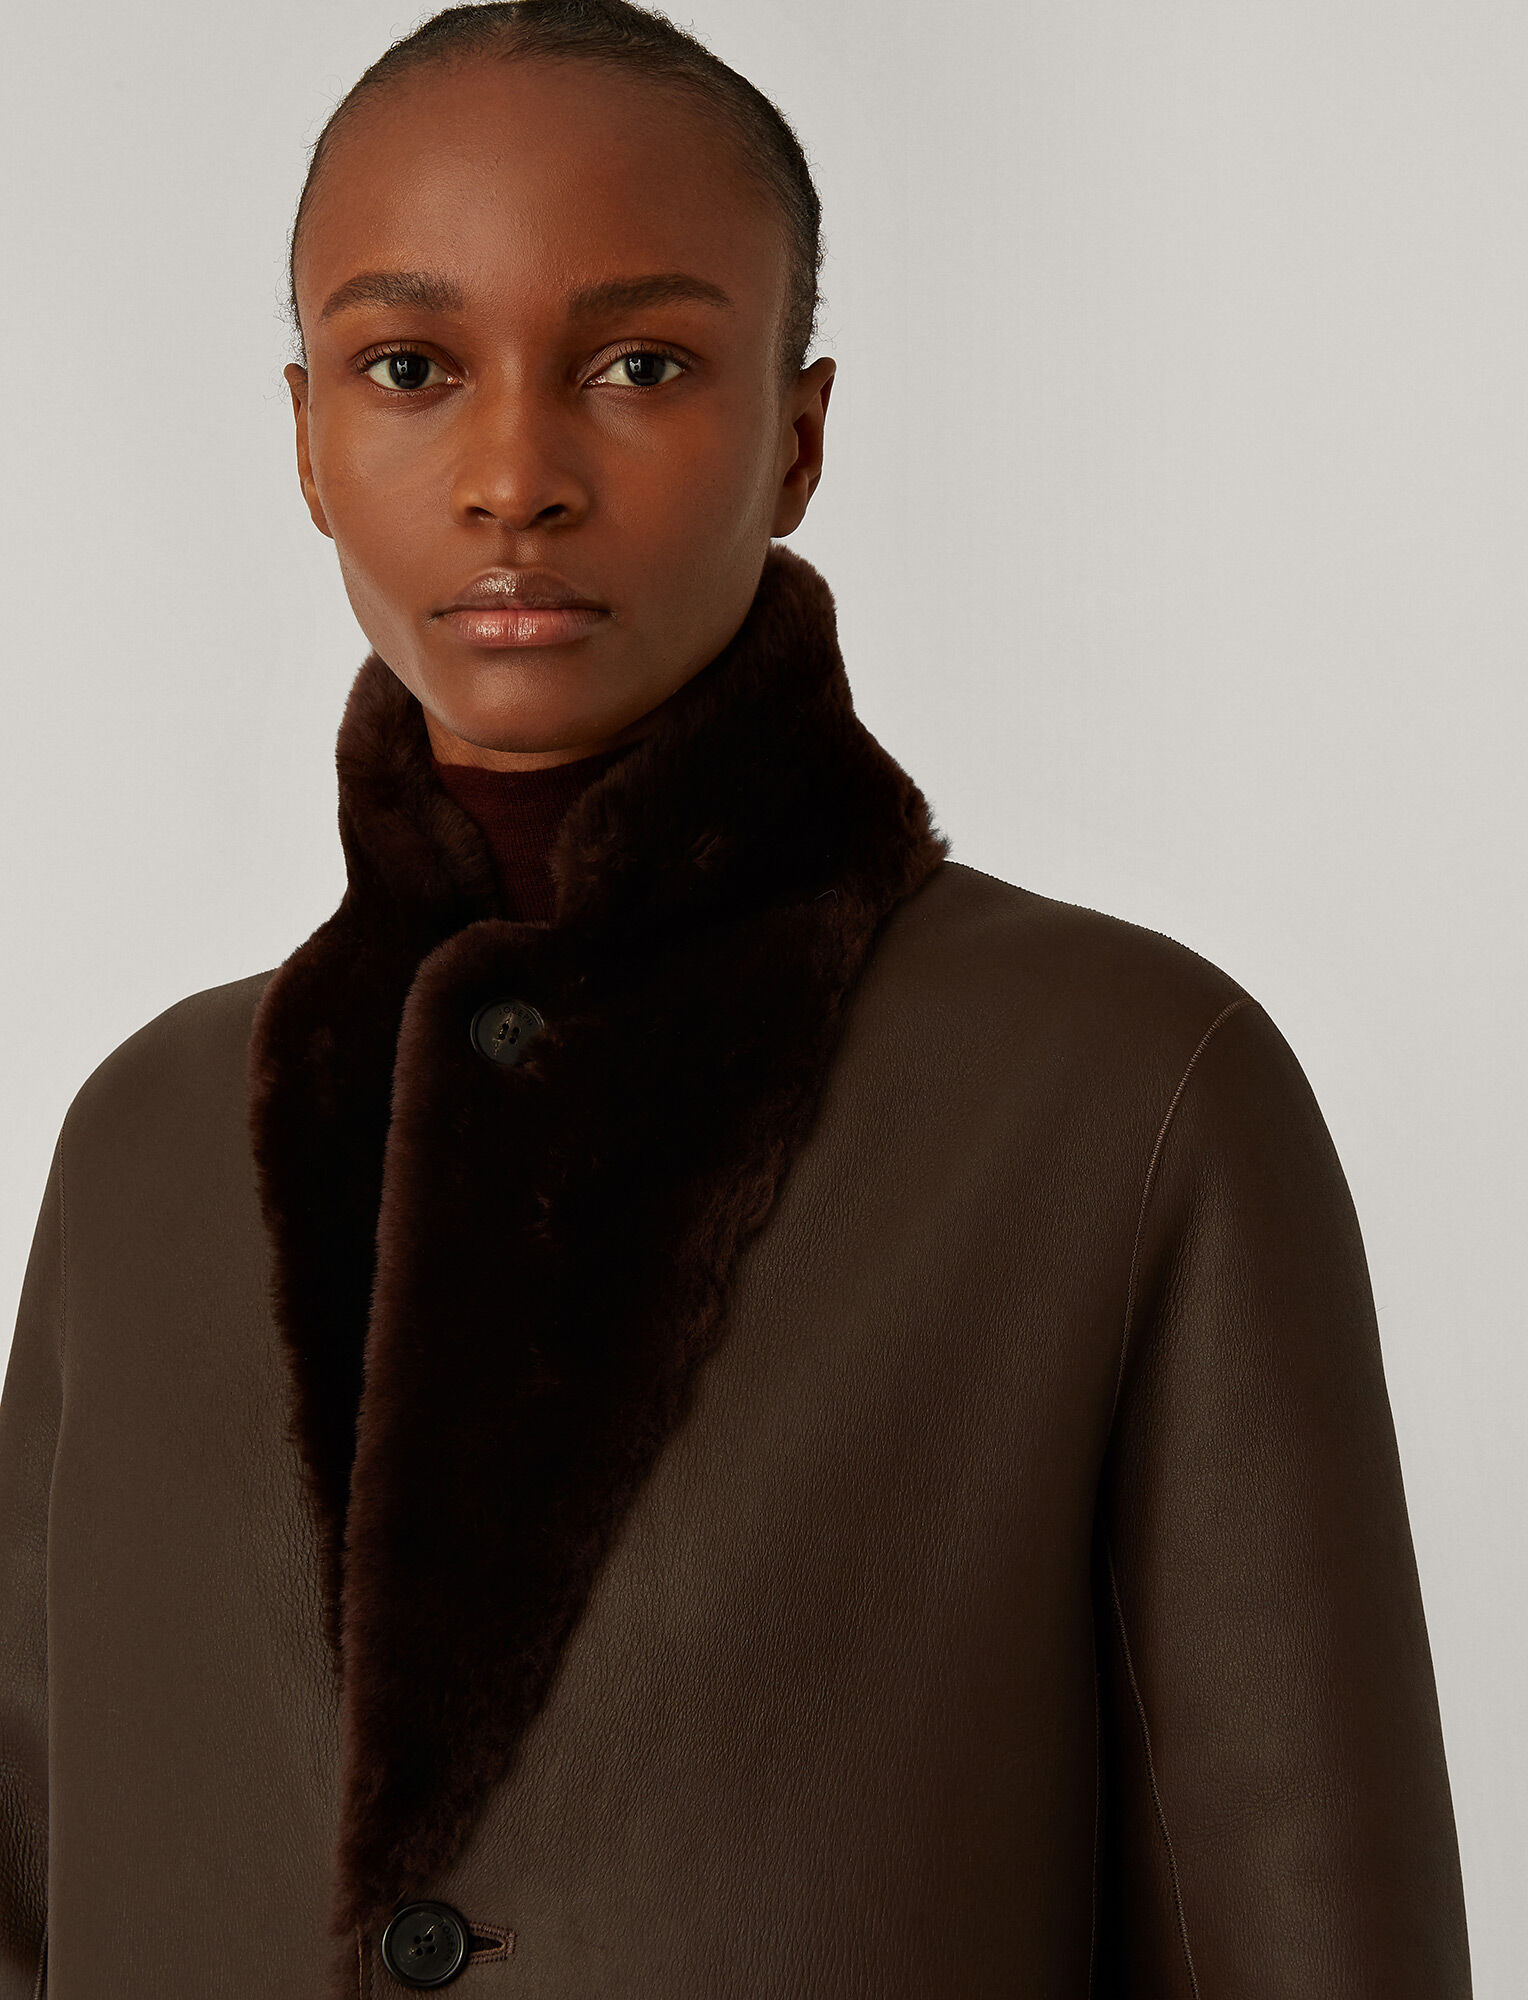 Joseph, Brittany Polar Skin Sheepskin, in Chocolate